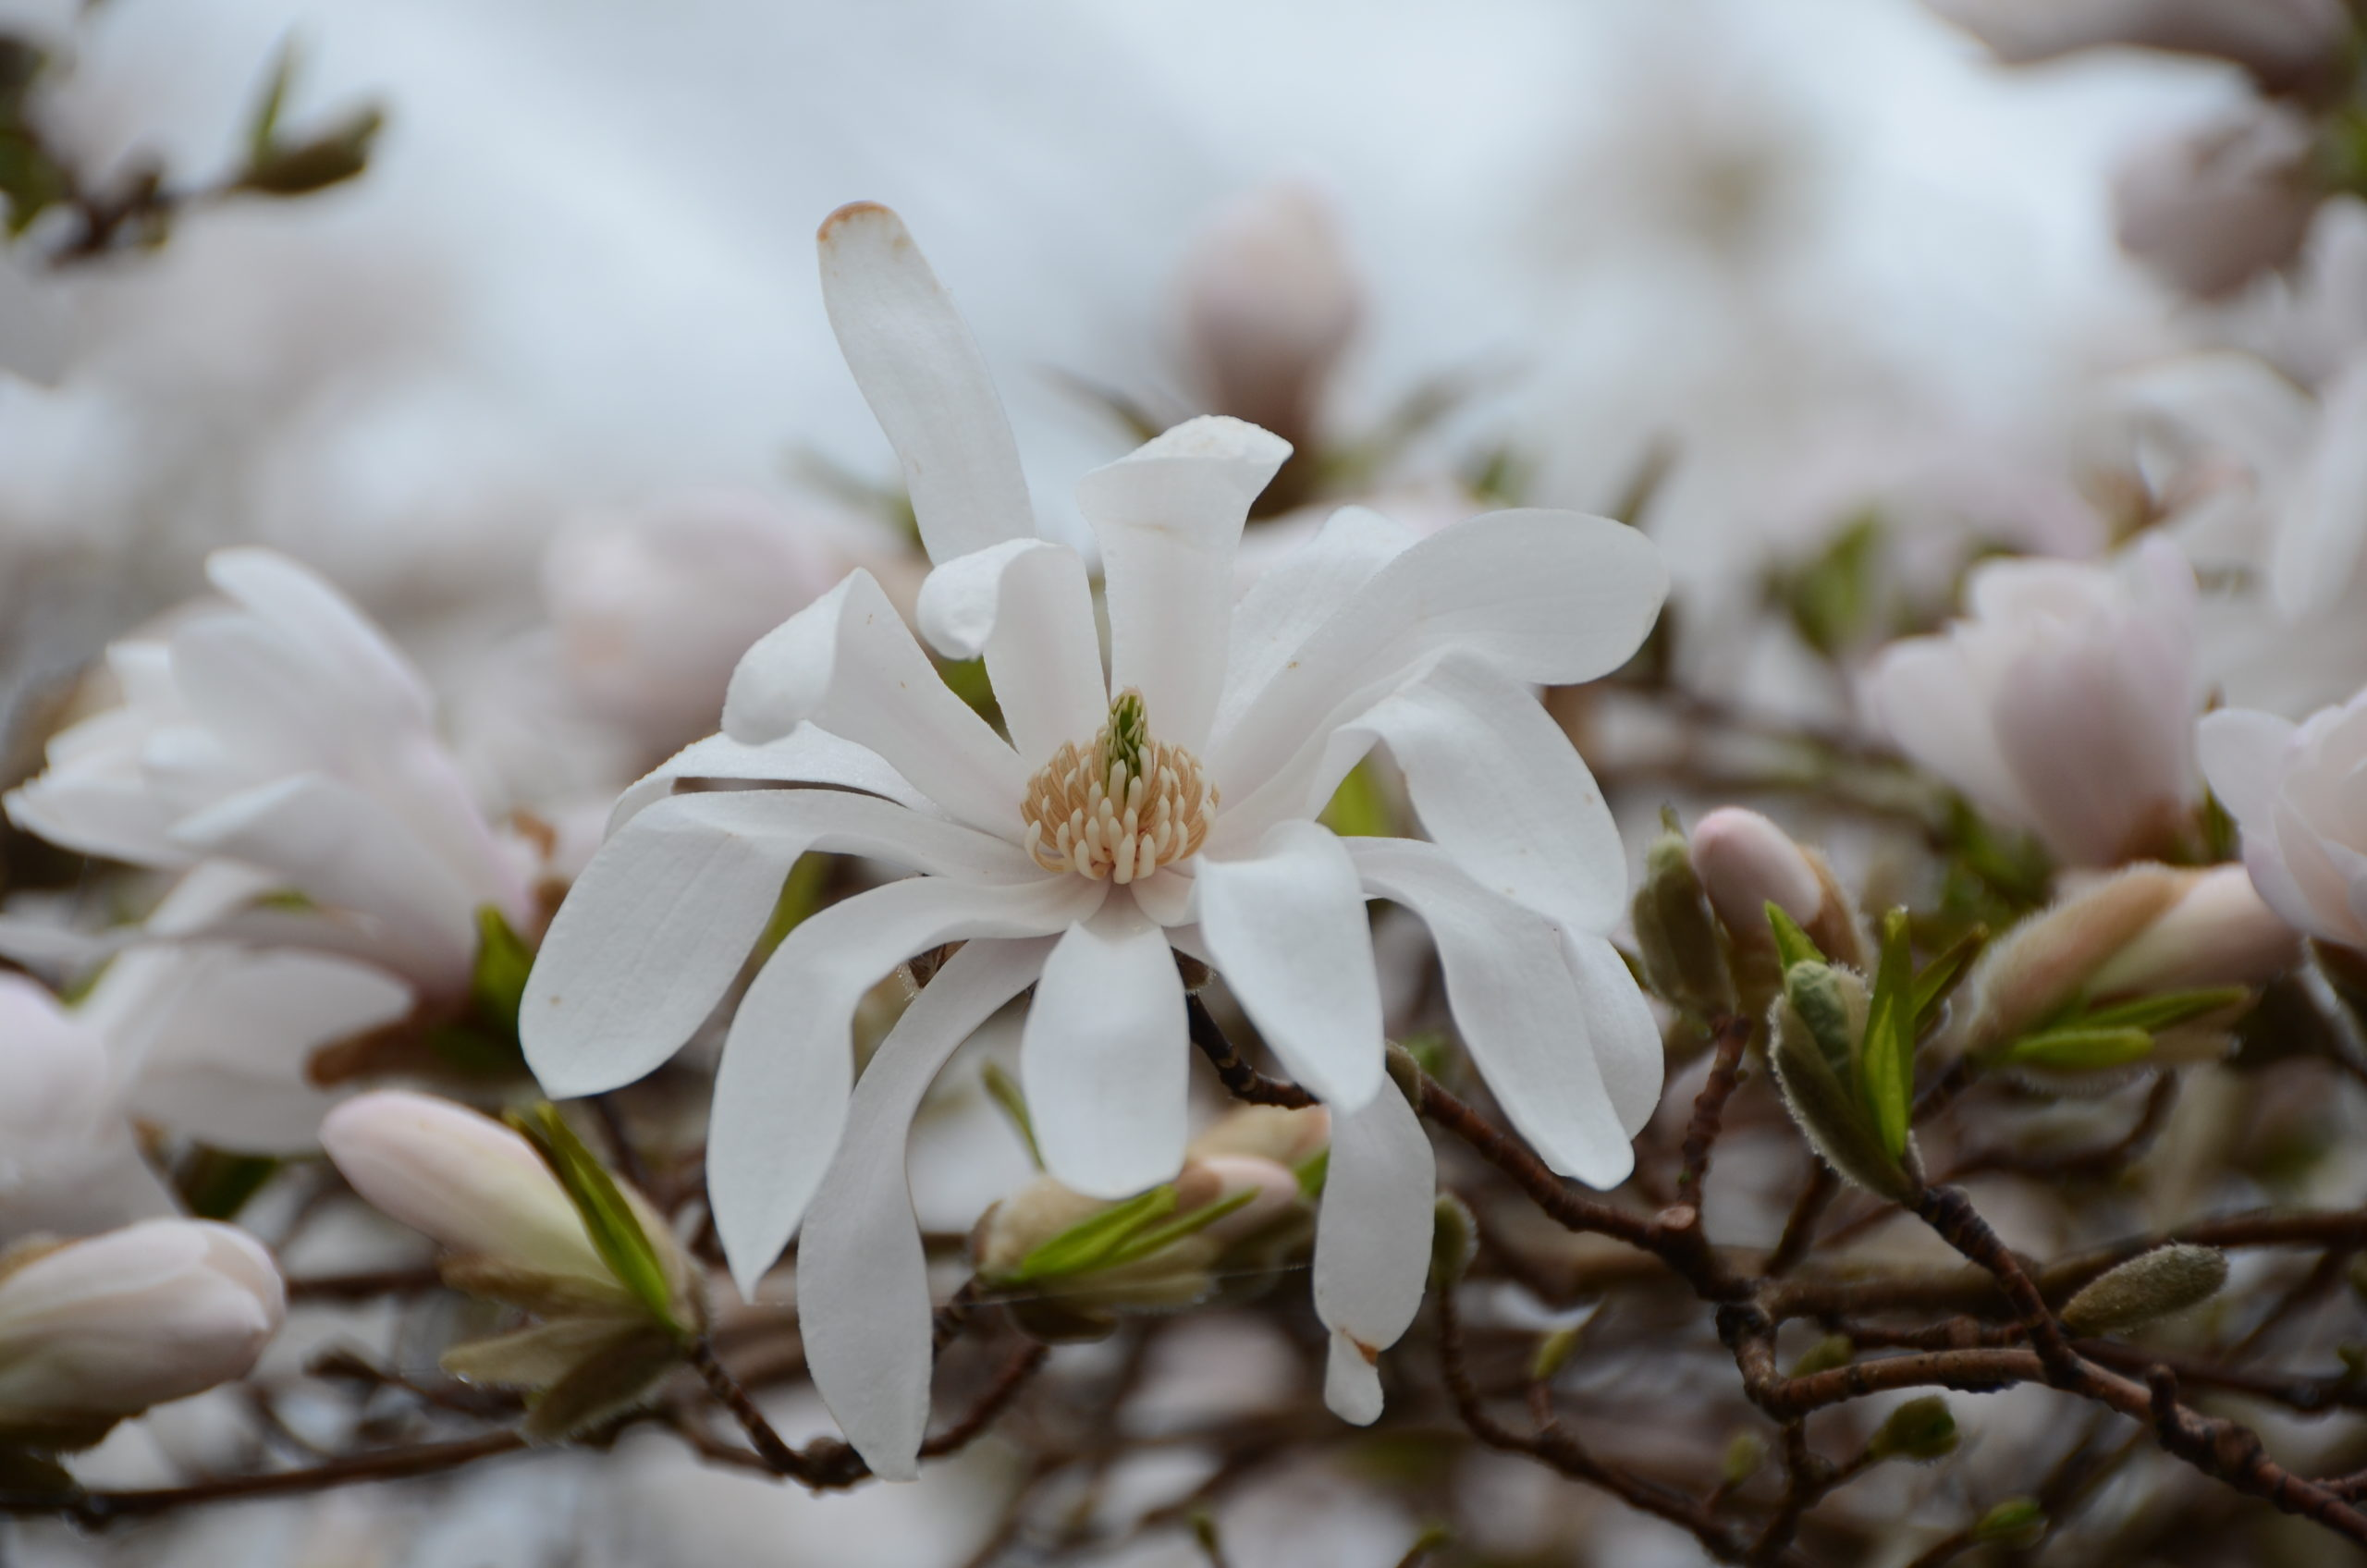 Star magnolia (Magnolia stellate) flowers are very different from standard magnolias. Star flowers are almost always white, somewhat smaller, with a mild but pleasant aroma.